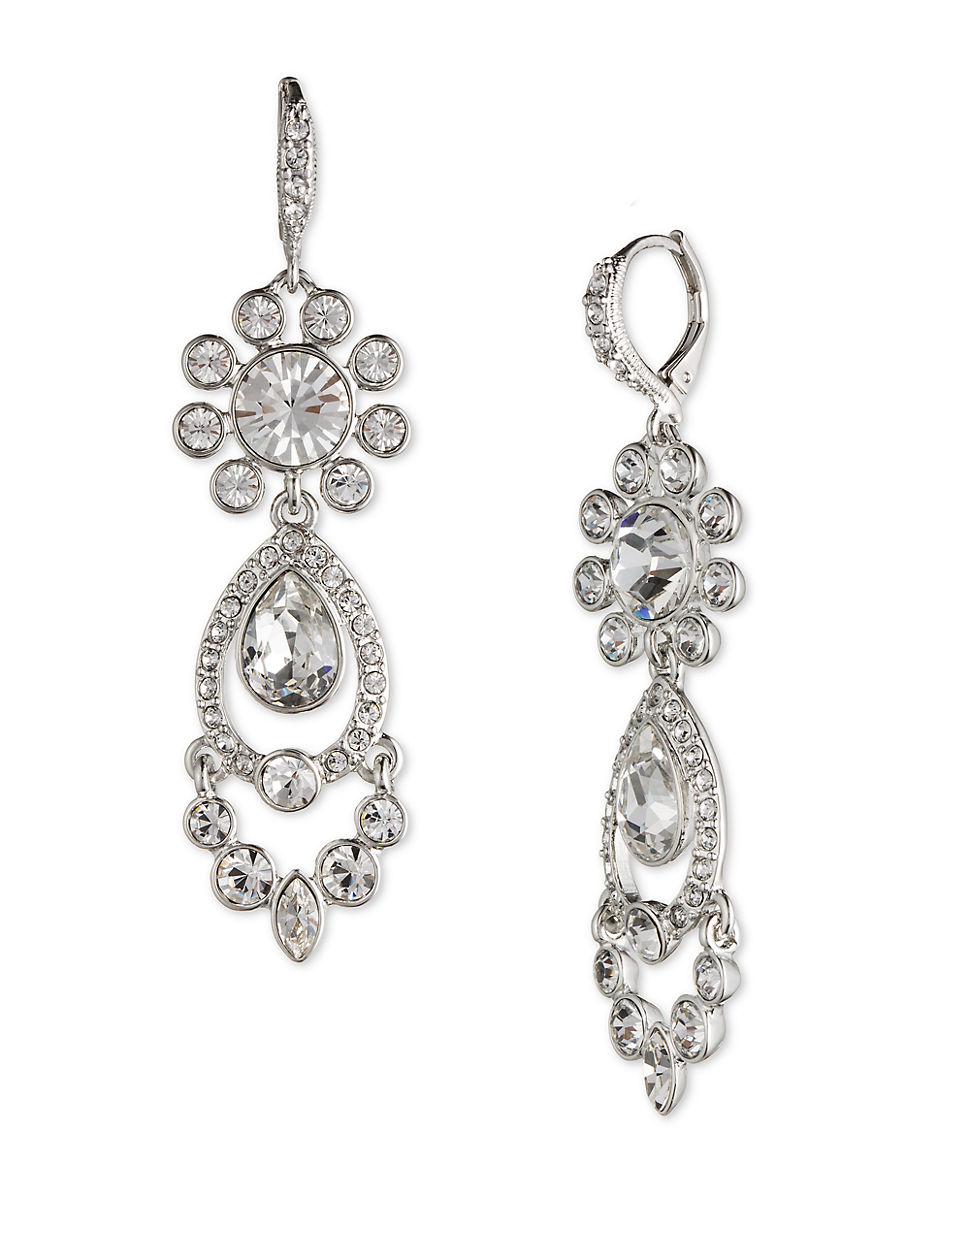 Givenchy Silver-tone Crystal Chandelier Earrings in